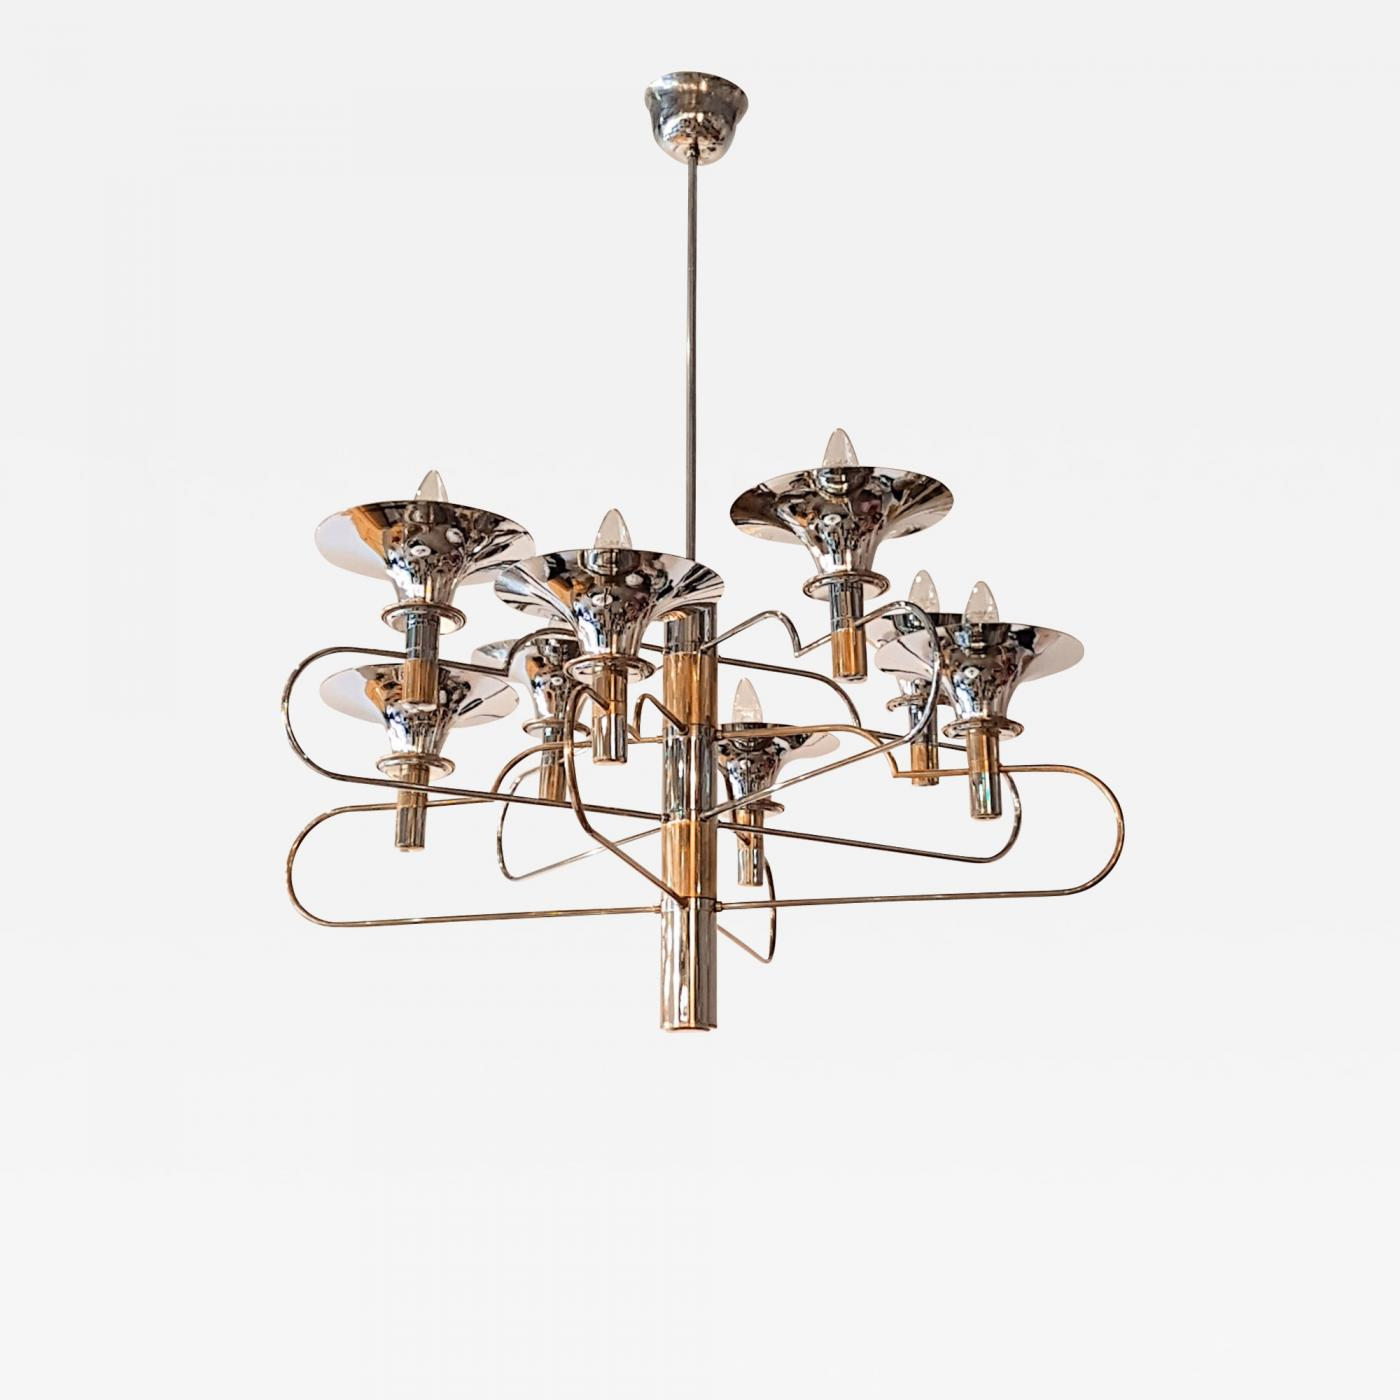 Listings Furniture Lighting Chandeliers And Pendants Gaetano Sciolari Italian Mid Century